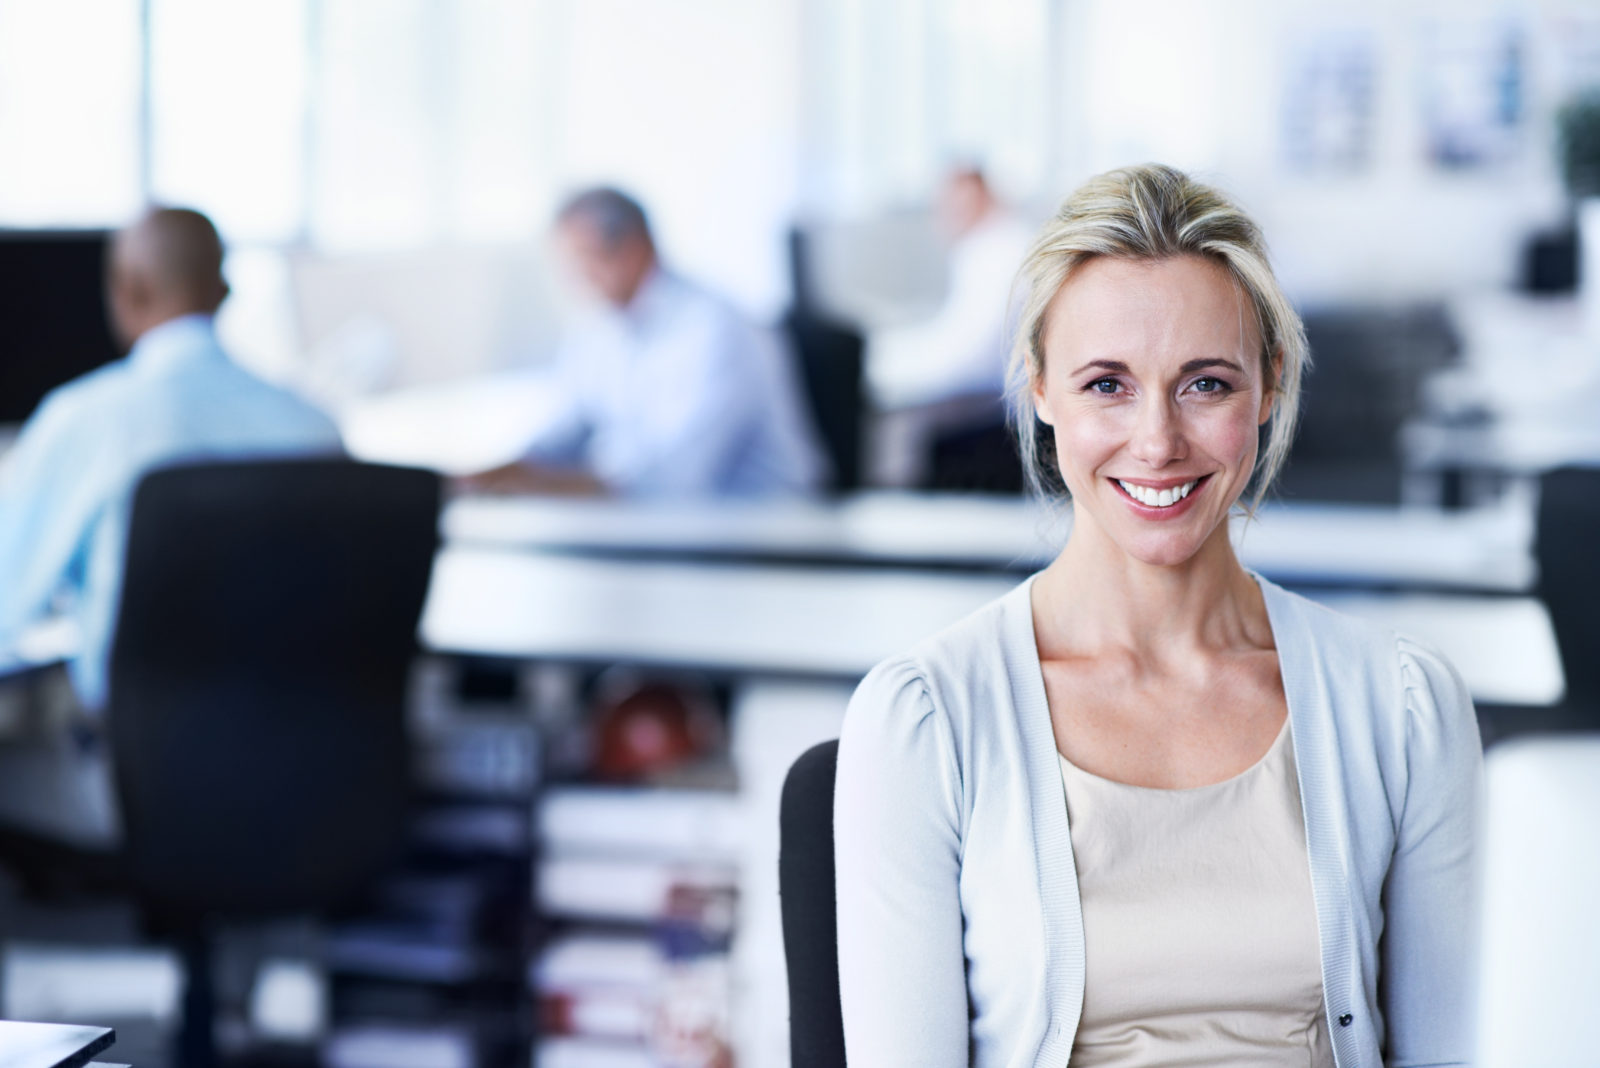 Shot of a woman working sitting in an office with colleagues in the backgroud